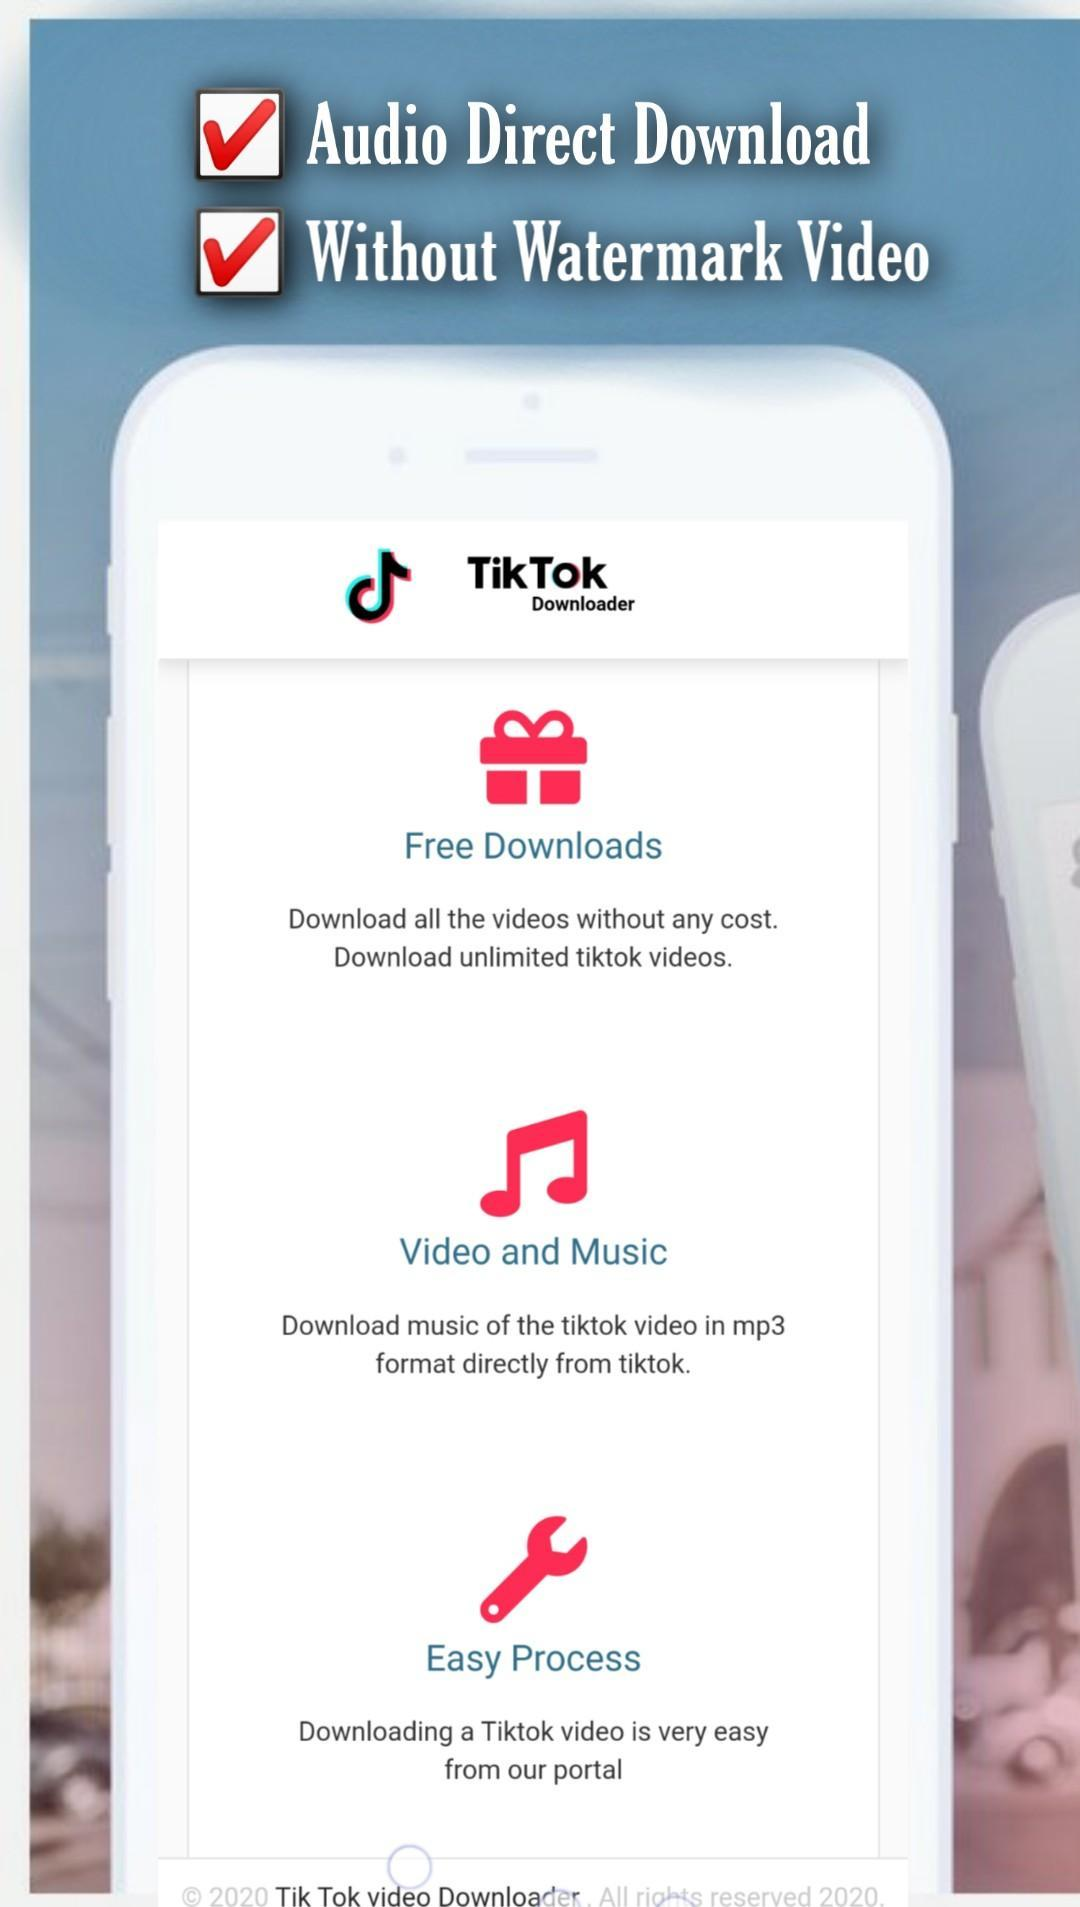 Tiktok Video Without Watermark For Android Apk Download